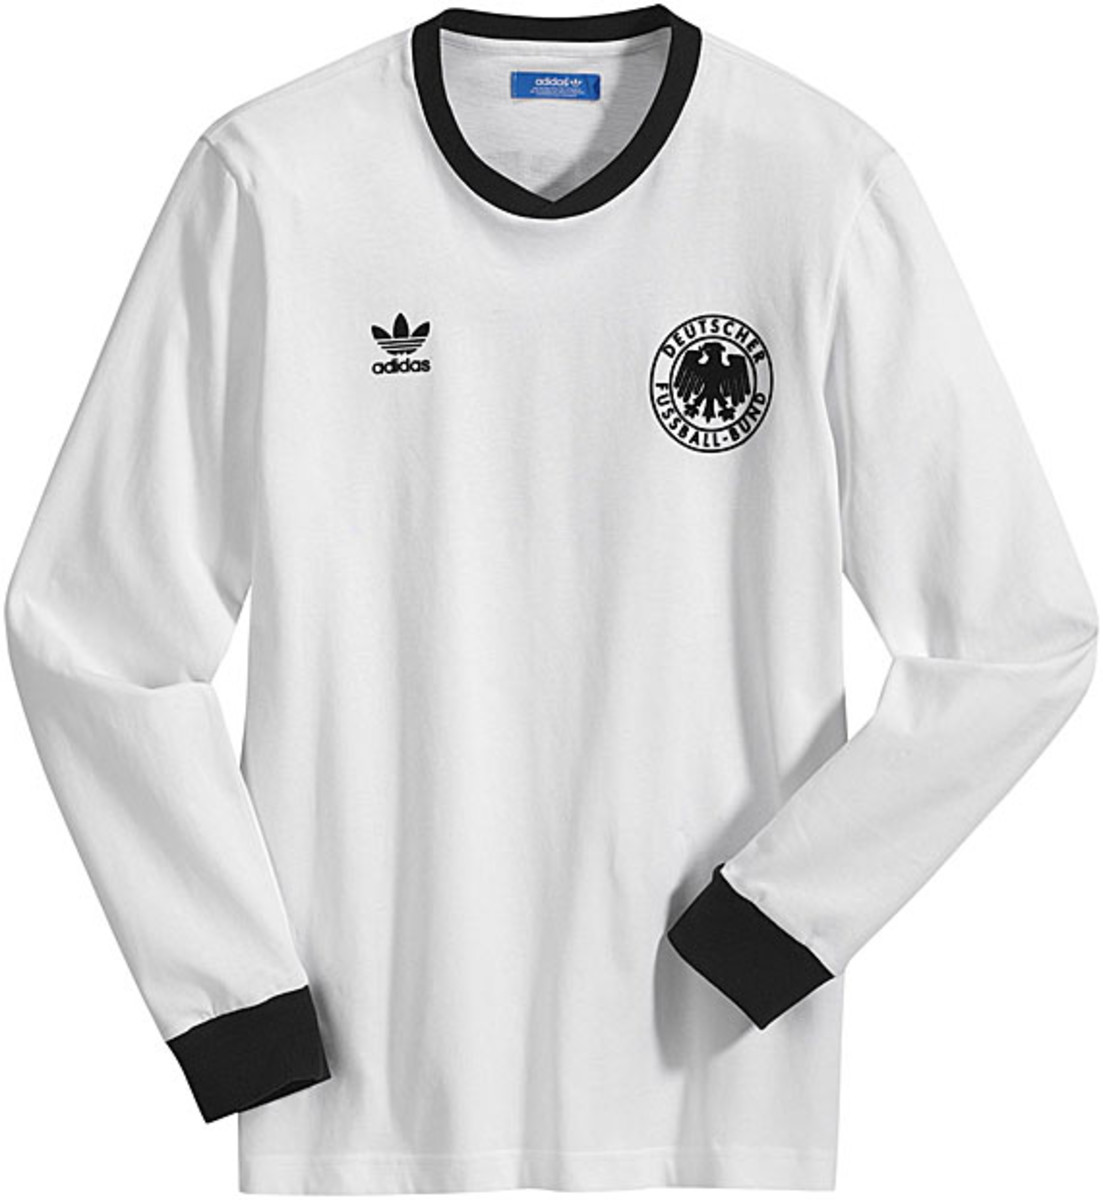 adidas-originals-euro-cup-2012-inspired-fan-gear-13